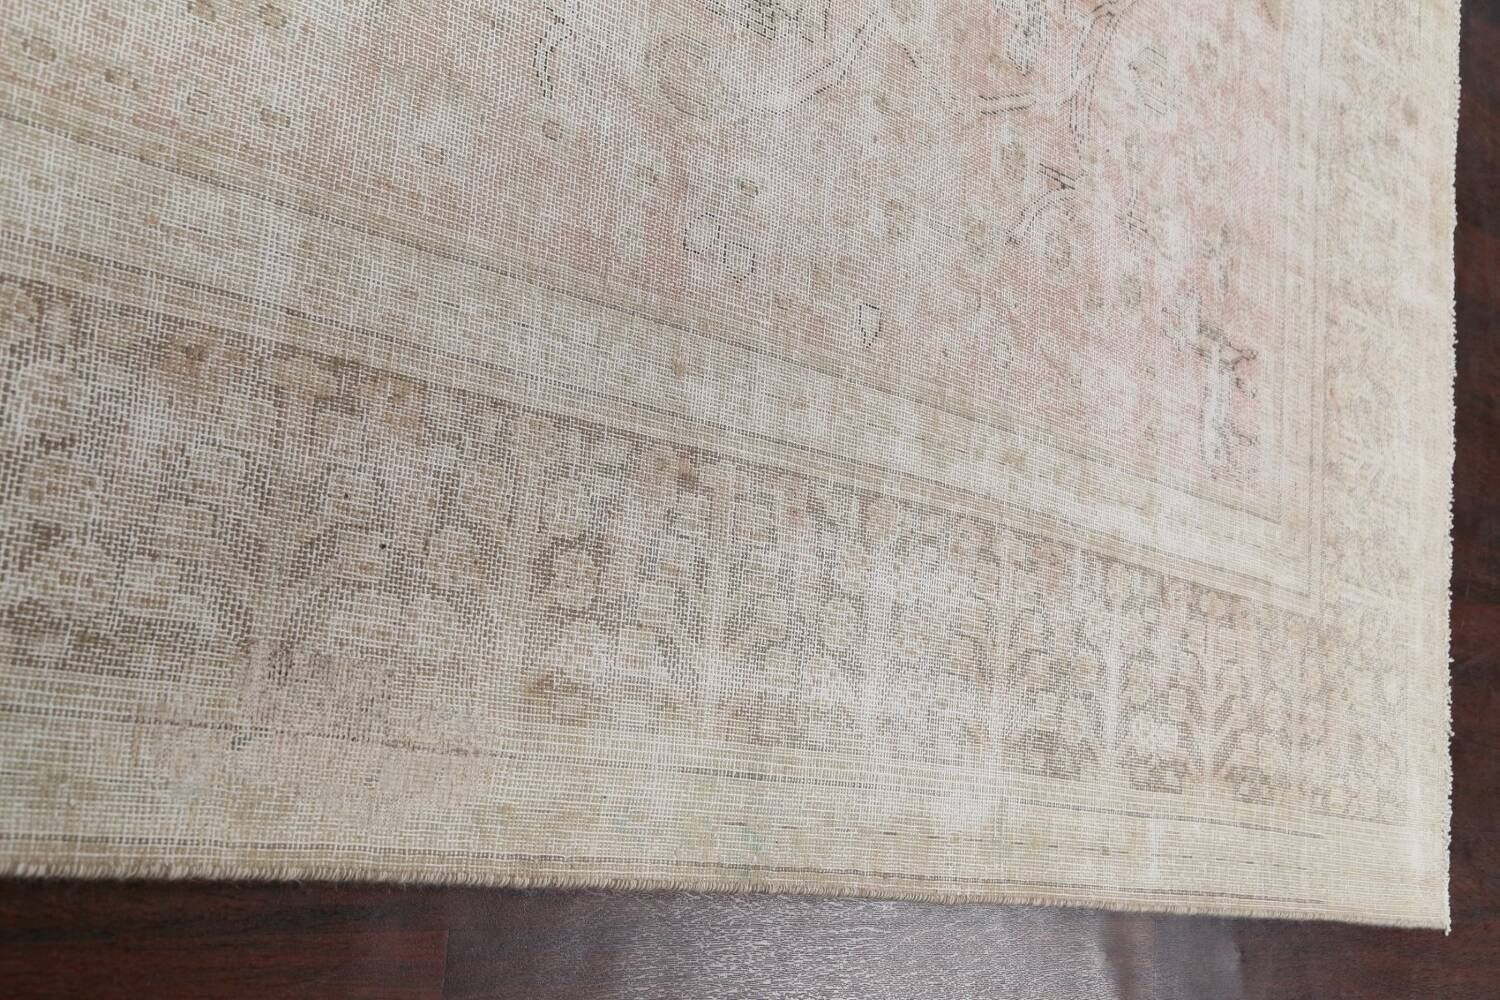 Antique Muted Distressed Tabriz Persian Area Rug 9x11 image 13